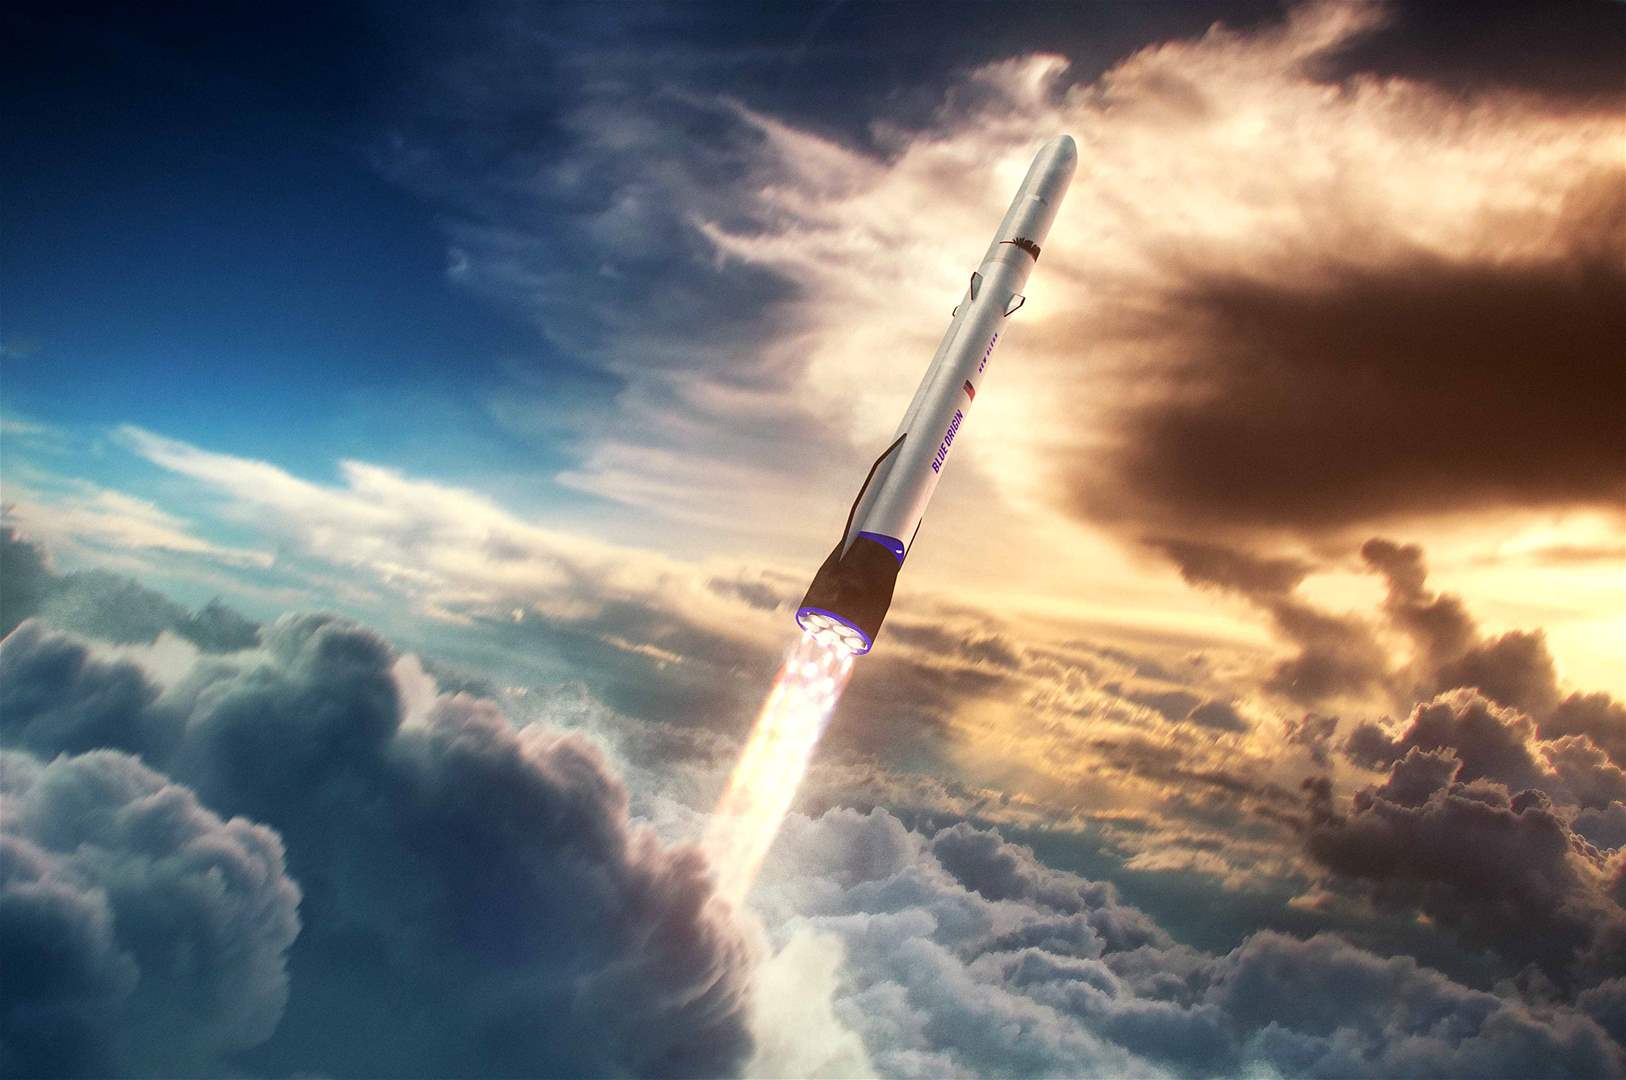 Jeff Bezos offers NASA $2bn to get moon mission contract